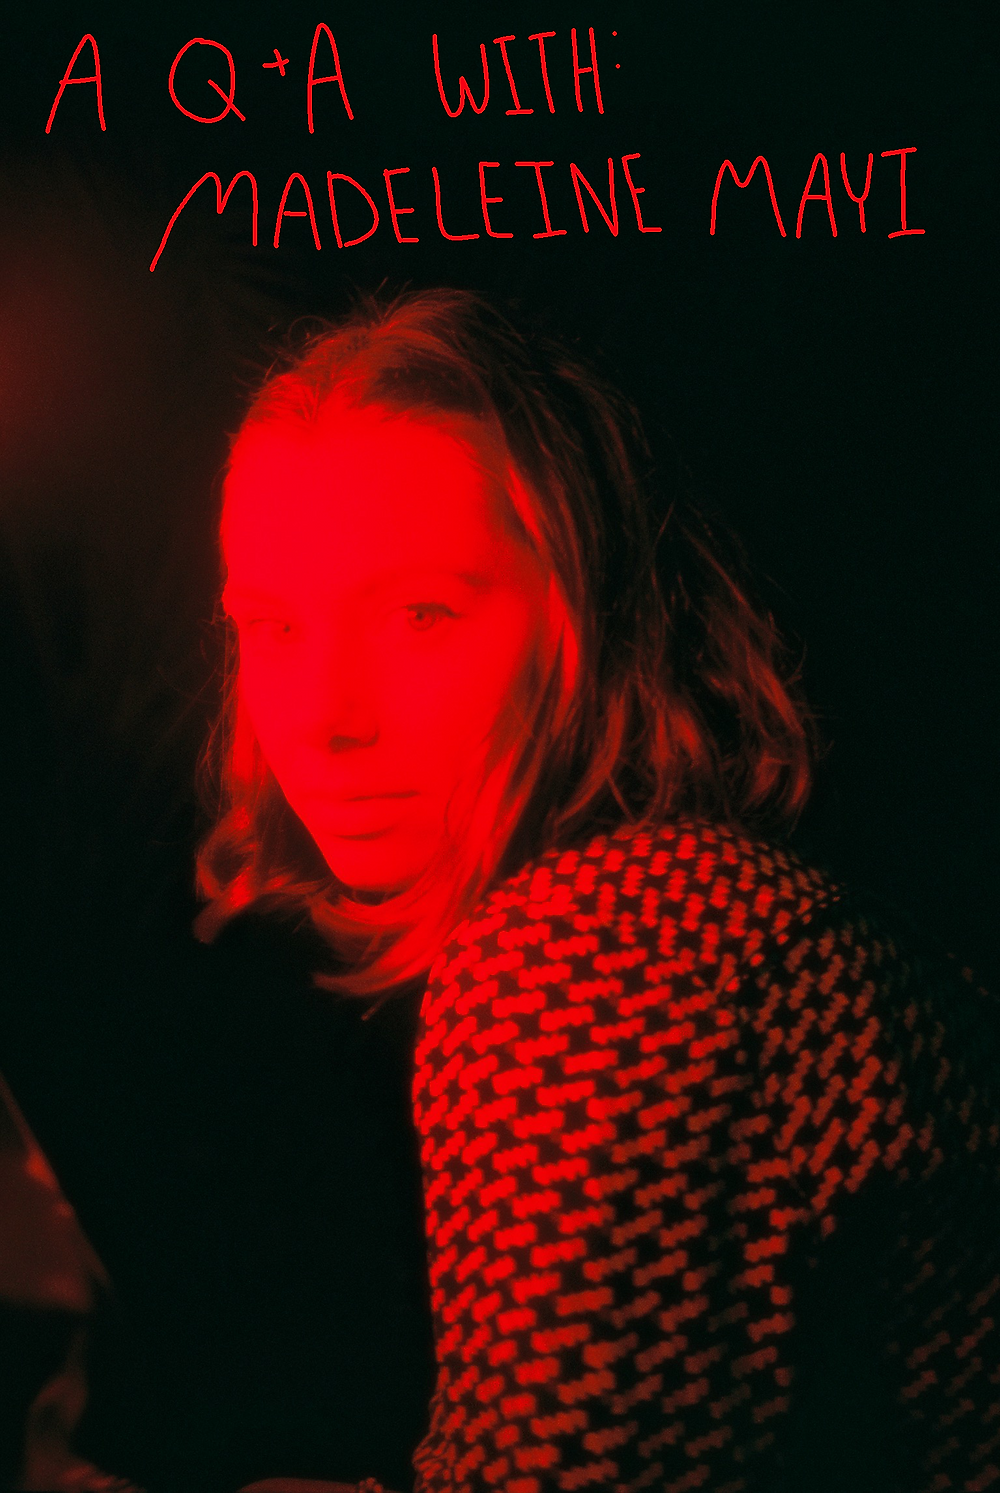 Madeleine Mayi is looking over her shoulder at the camera, under red light. The background is black. Hand-drawn red text reads: A Q&A with Madeleine Mayi.